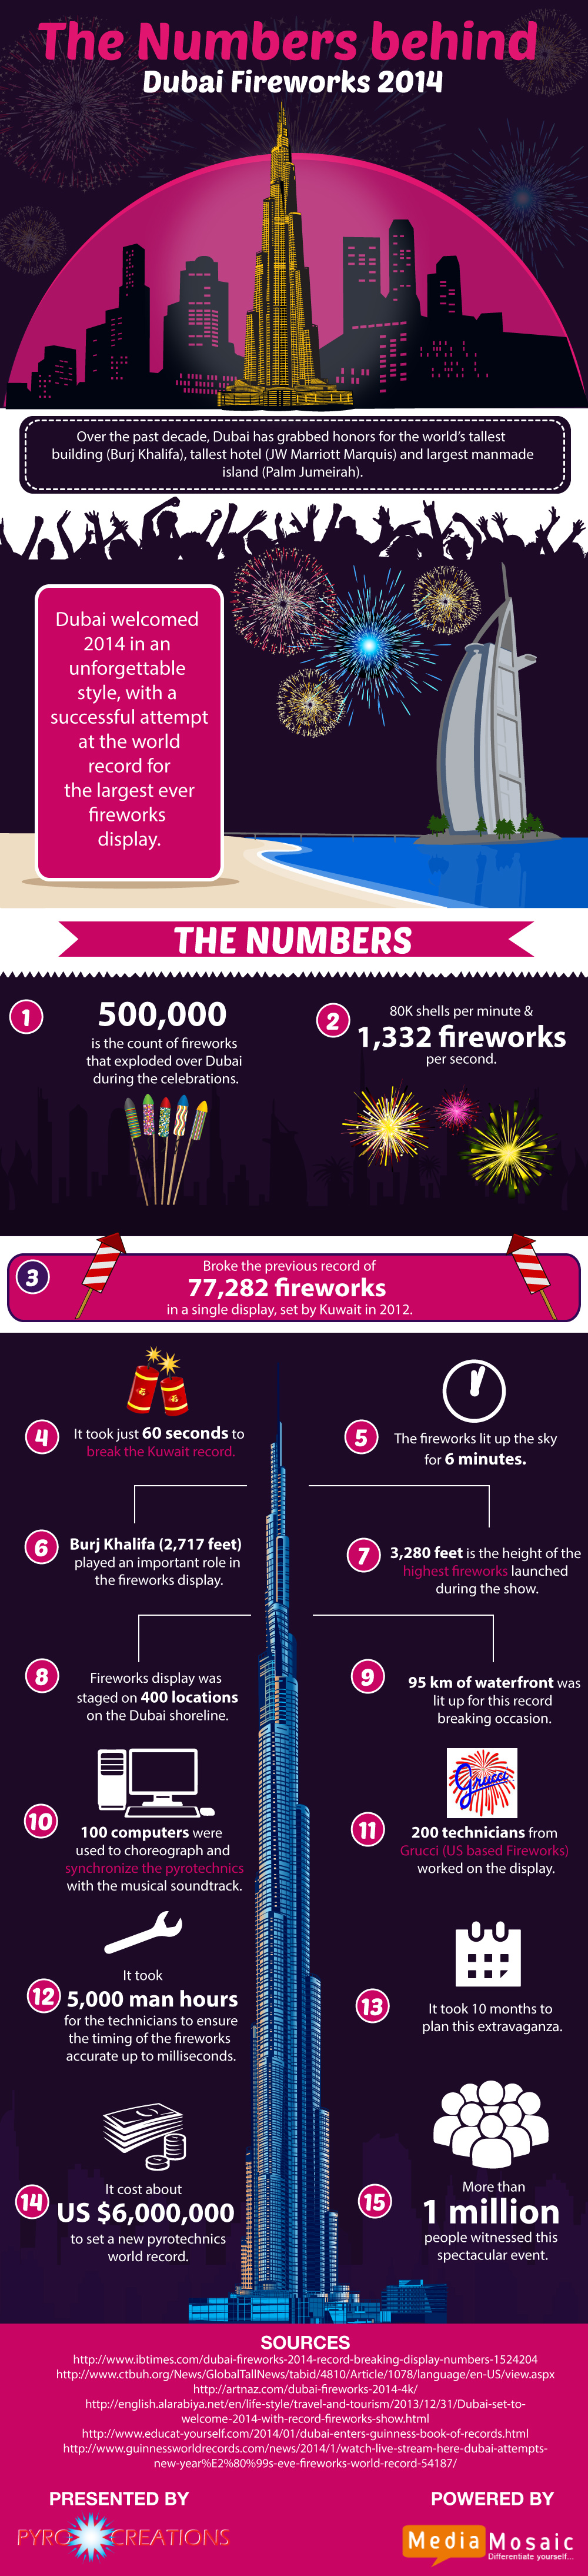 The Numbers Behind Dubai Fireworks 2014